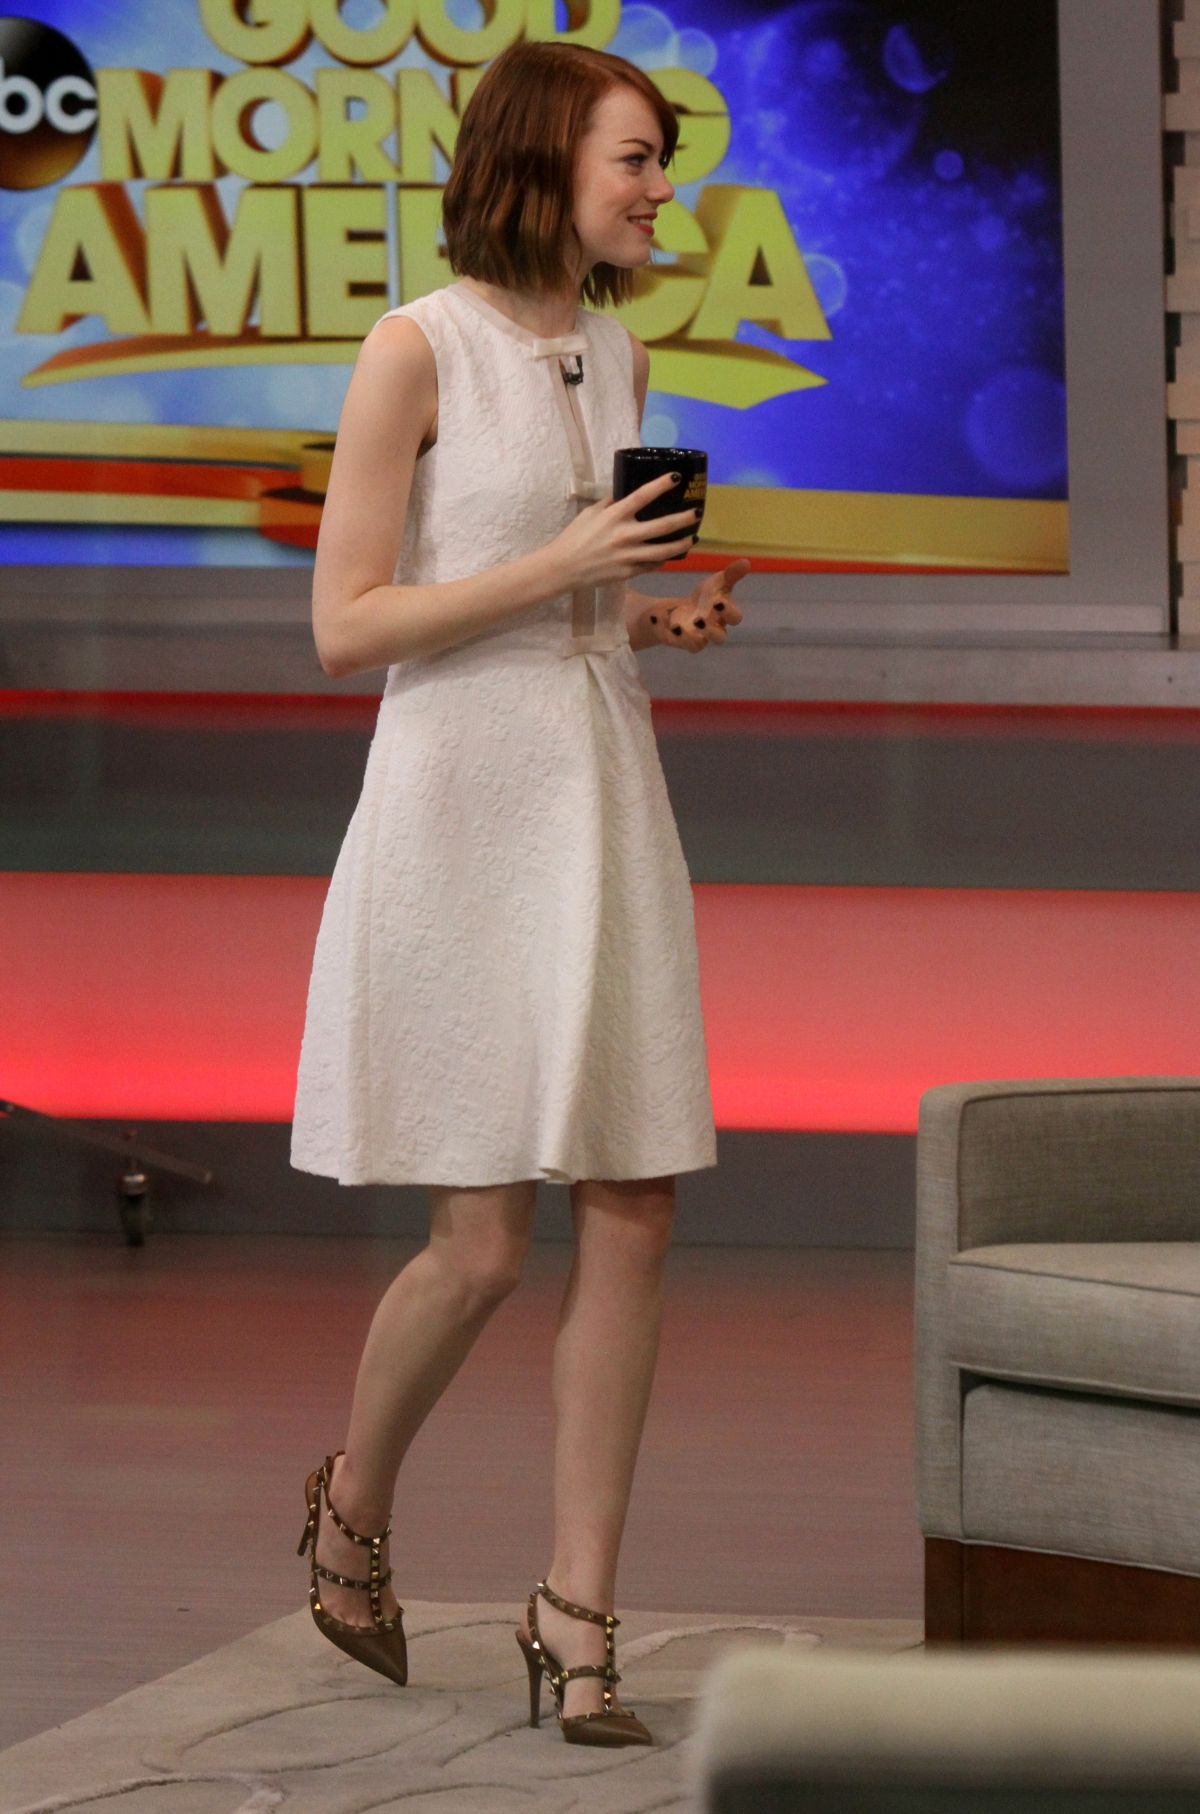 emma-stone-at-good-morning-america-in-new-york-1510_3